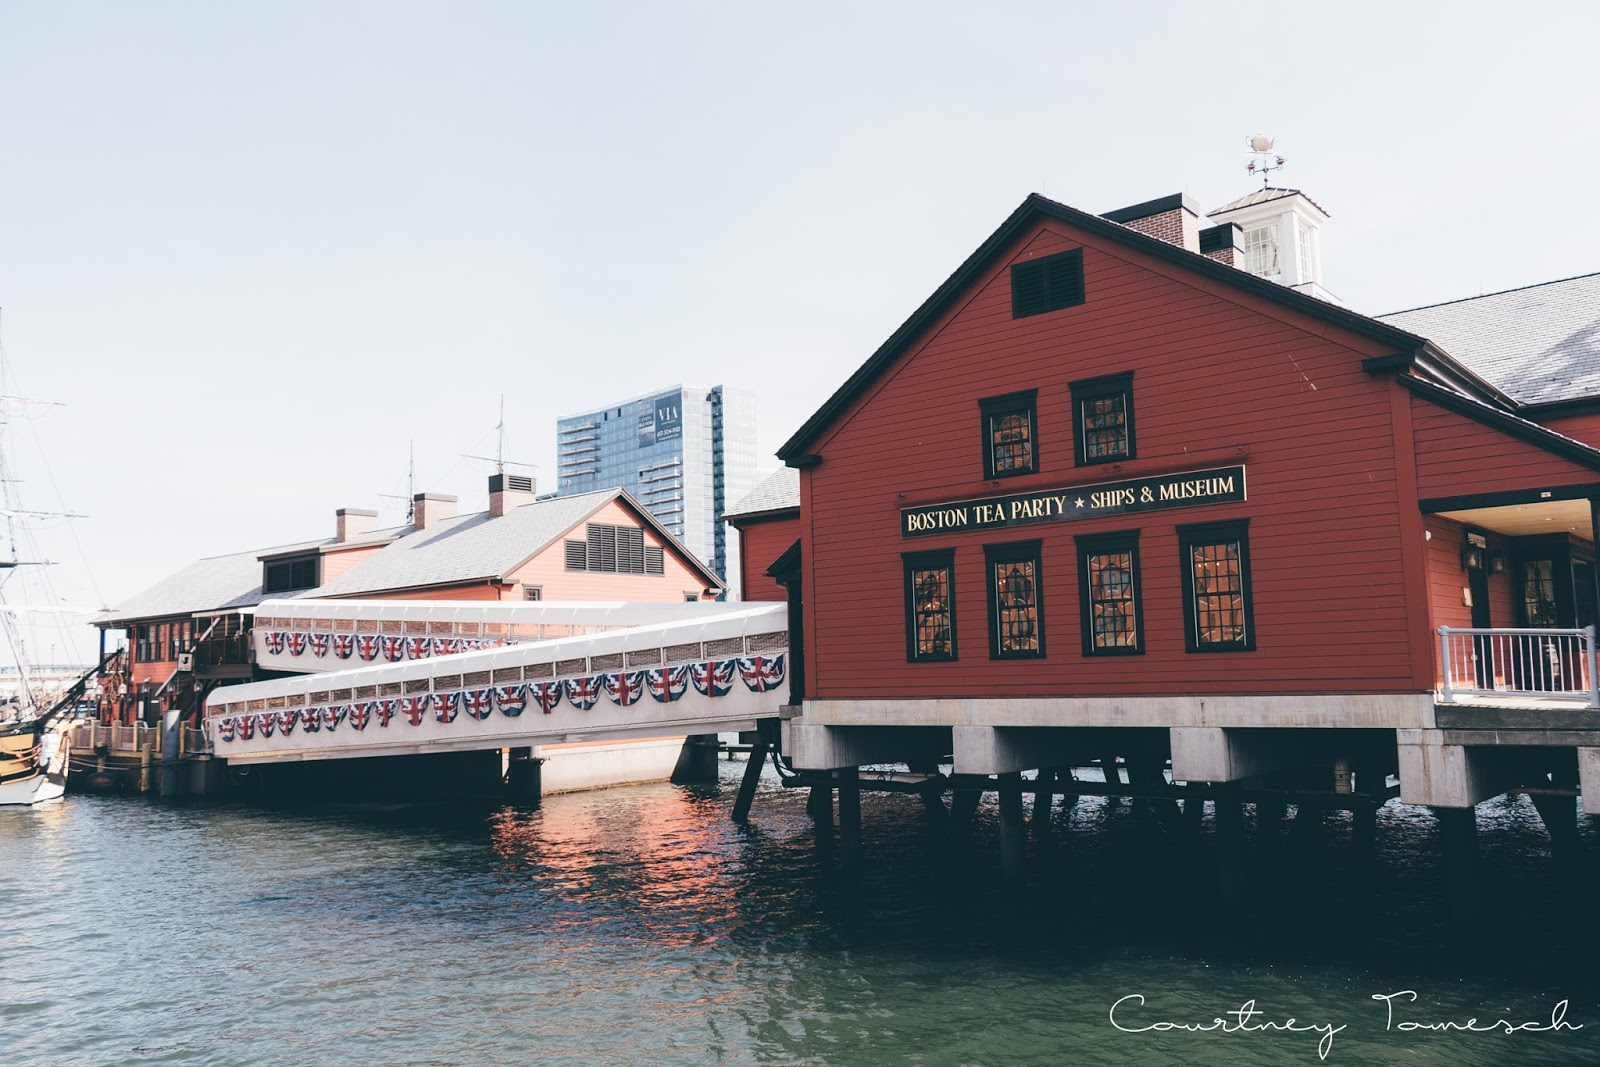 Courtney Tomesch Exploring: Boston Tea Party